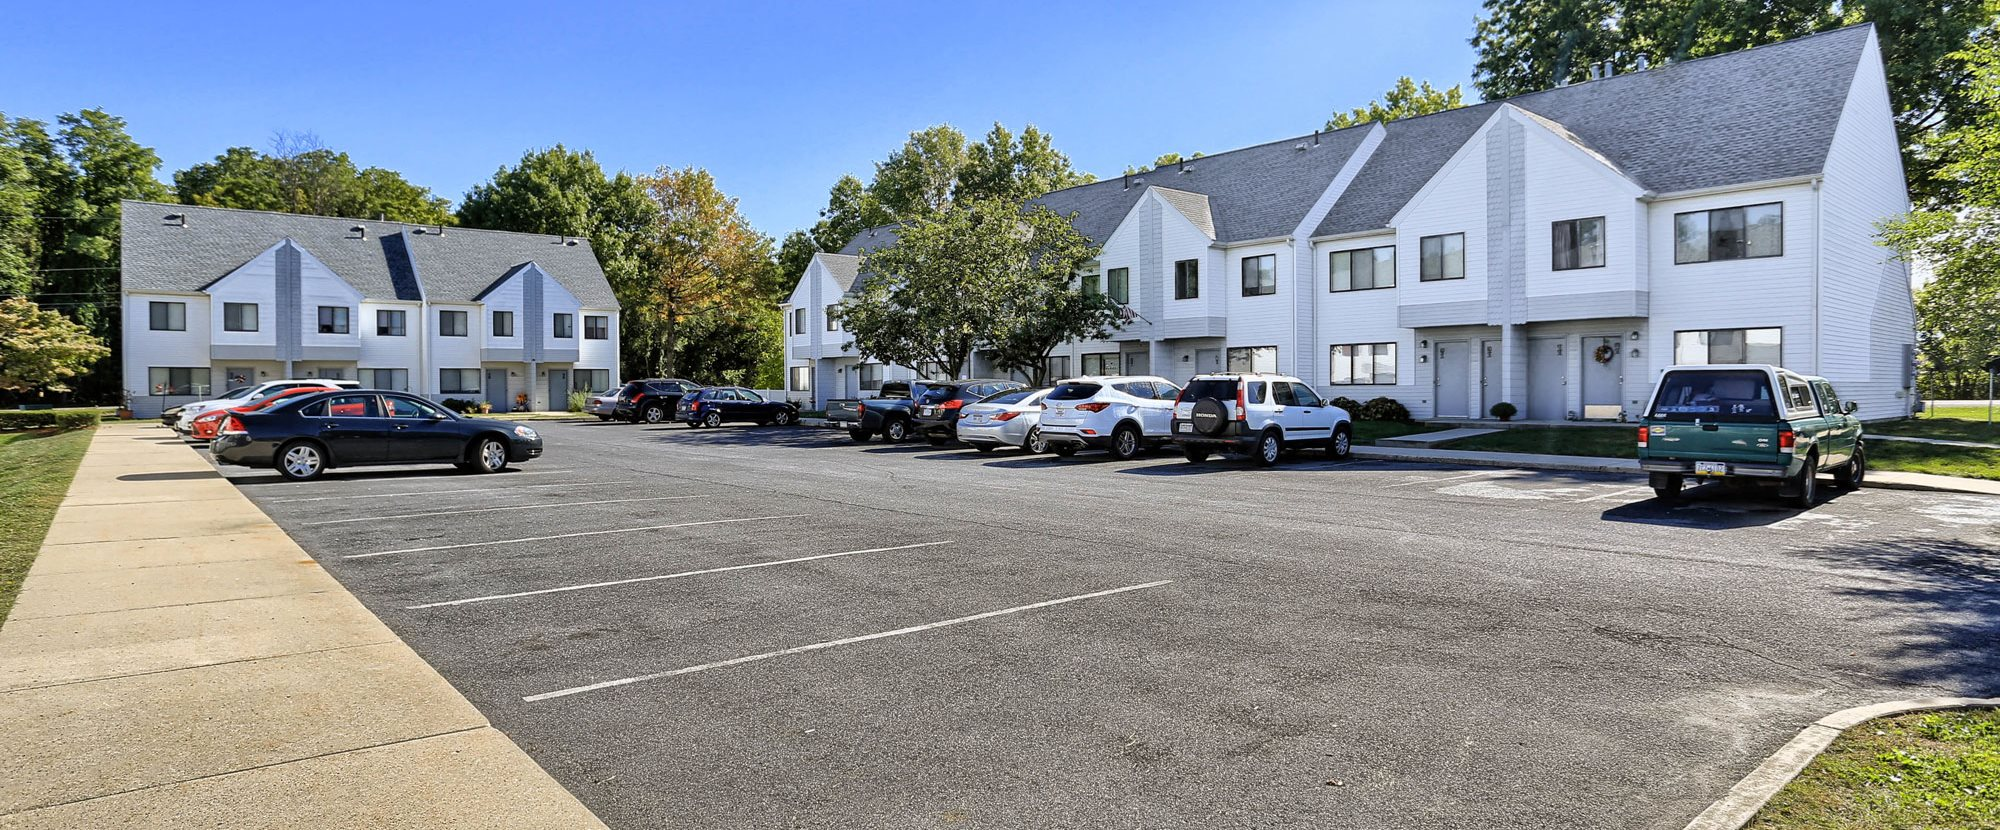 Find an apartment in Shippensburg, PA | Village of Timber Hill | Property Management, Inc.